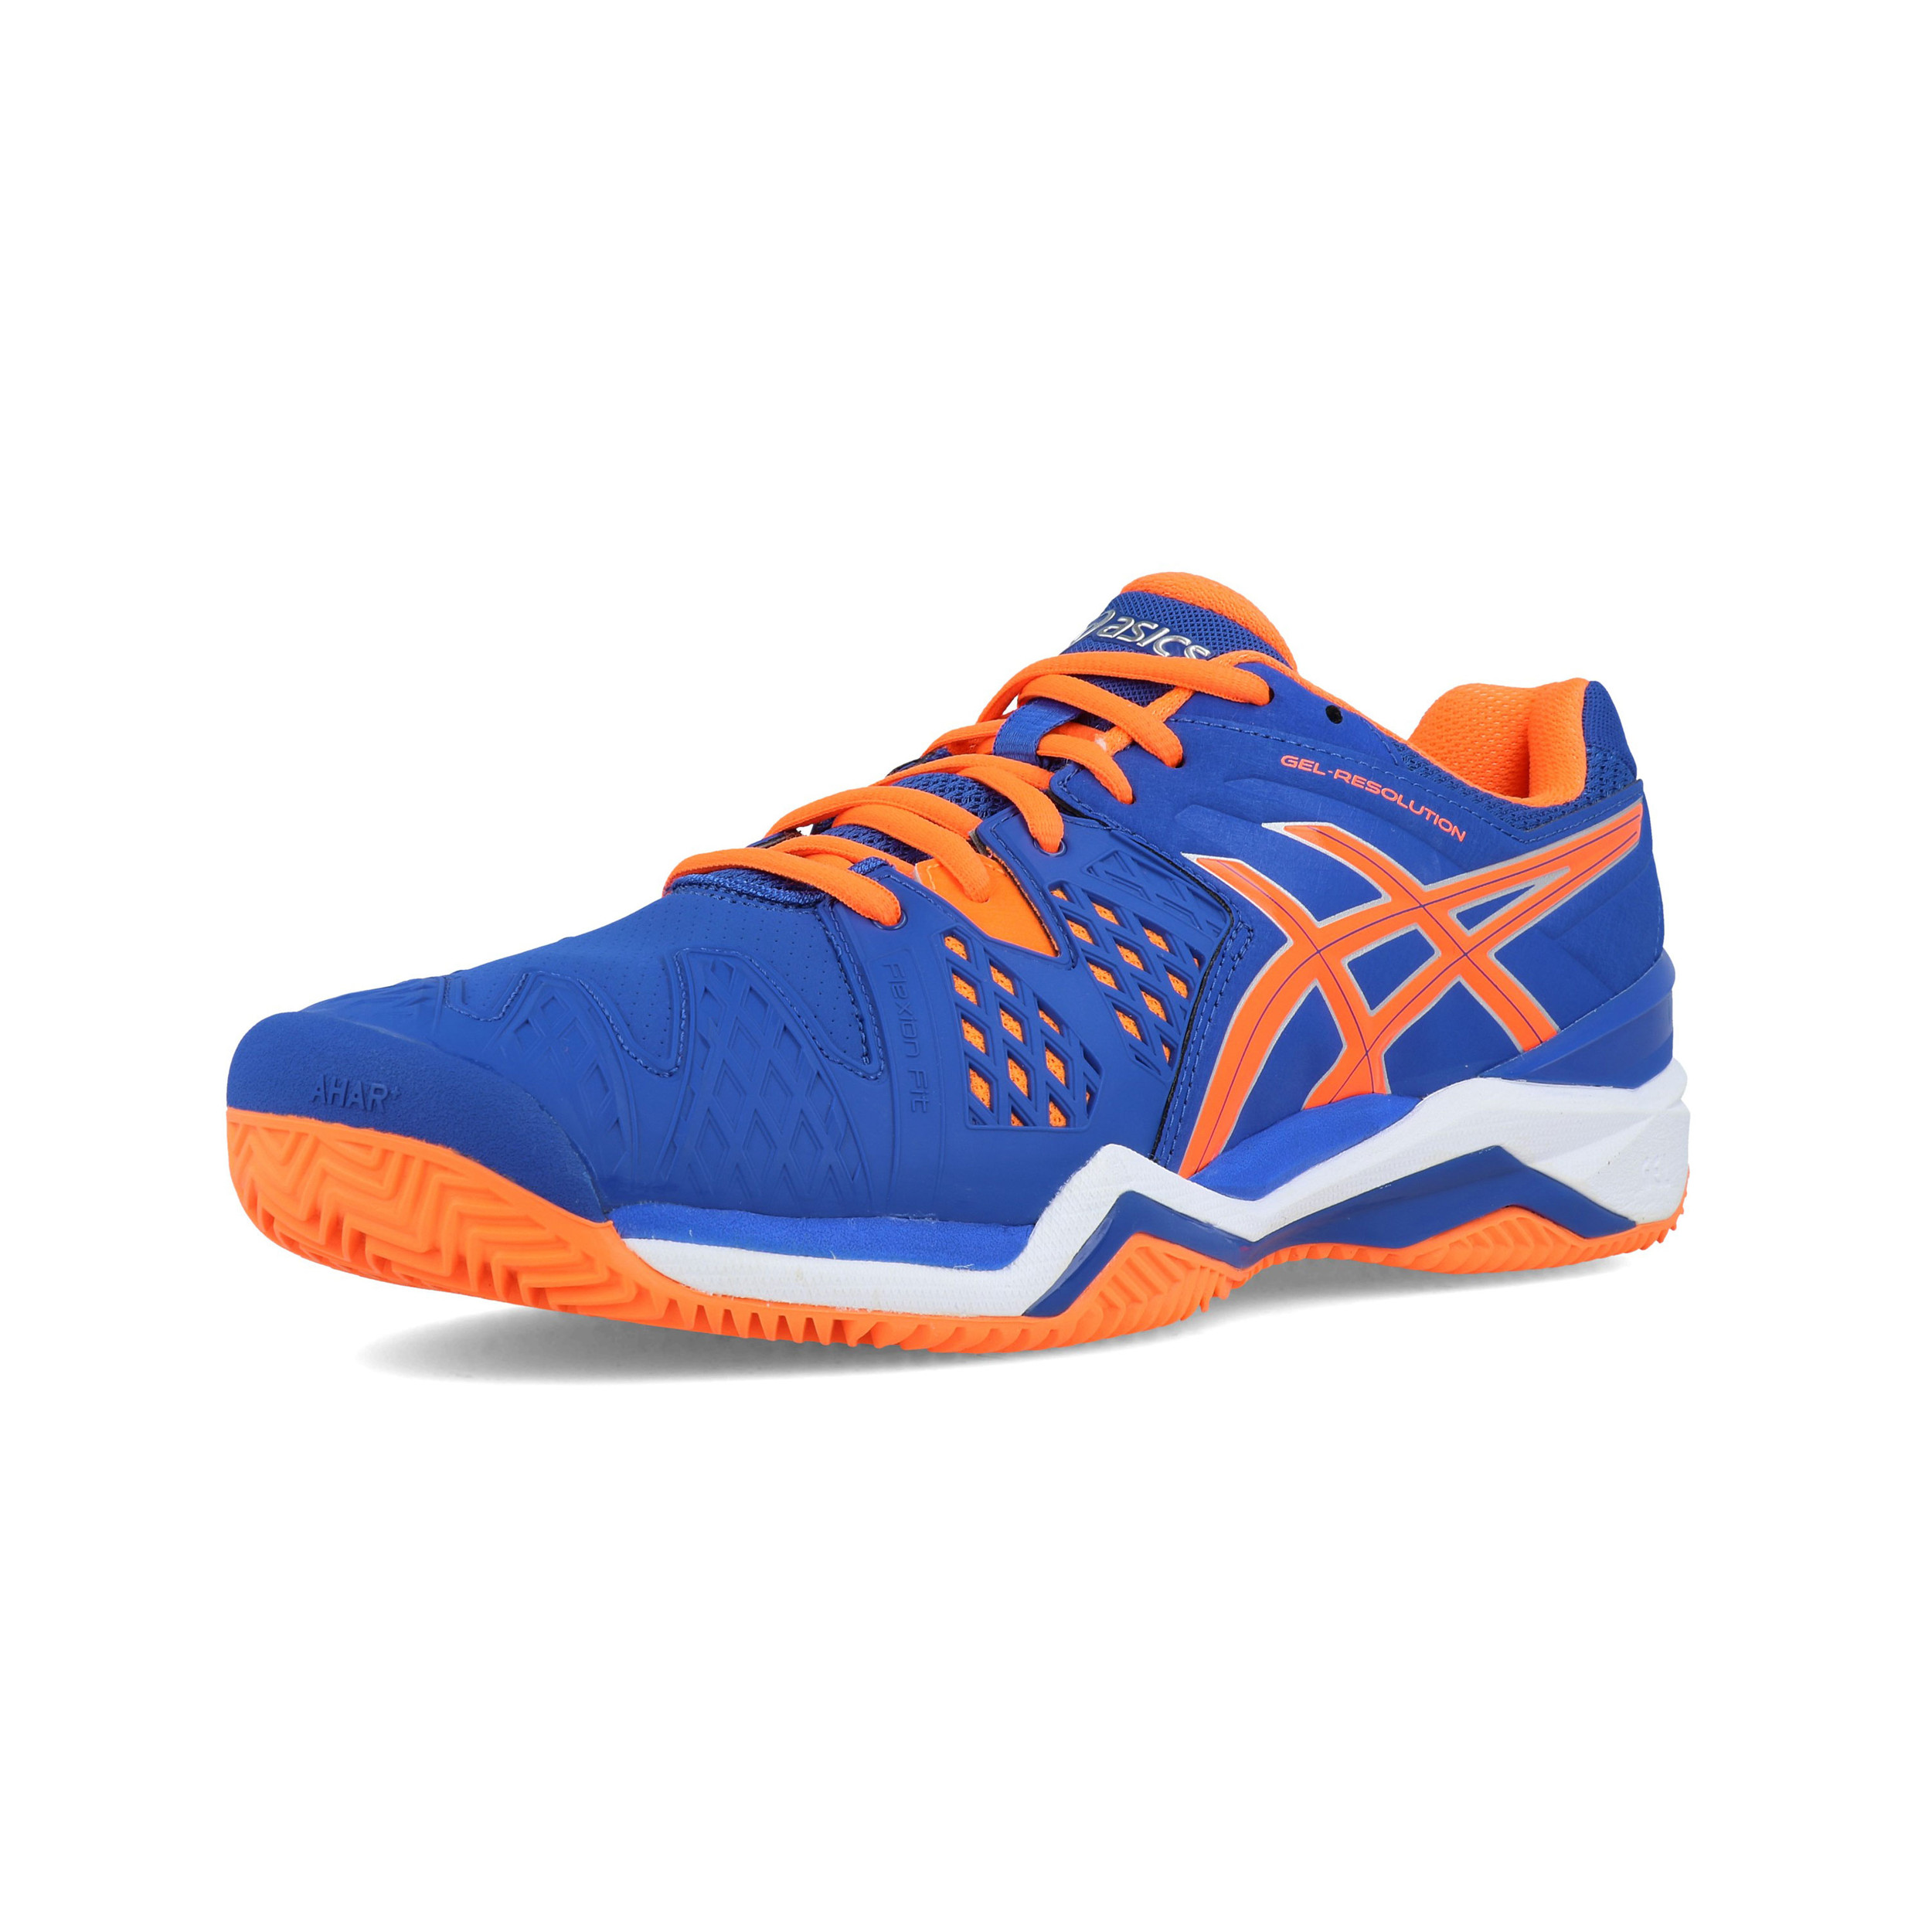 big sale f74c7 abdb4 Asics Mens Gel-Resolution 6 Clay Court Tennis Shoes Blue Sports Breathable